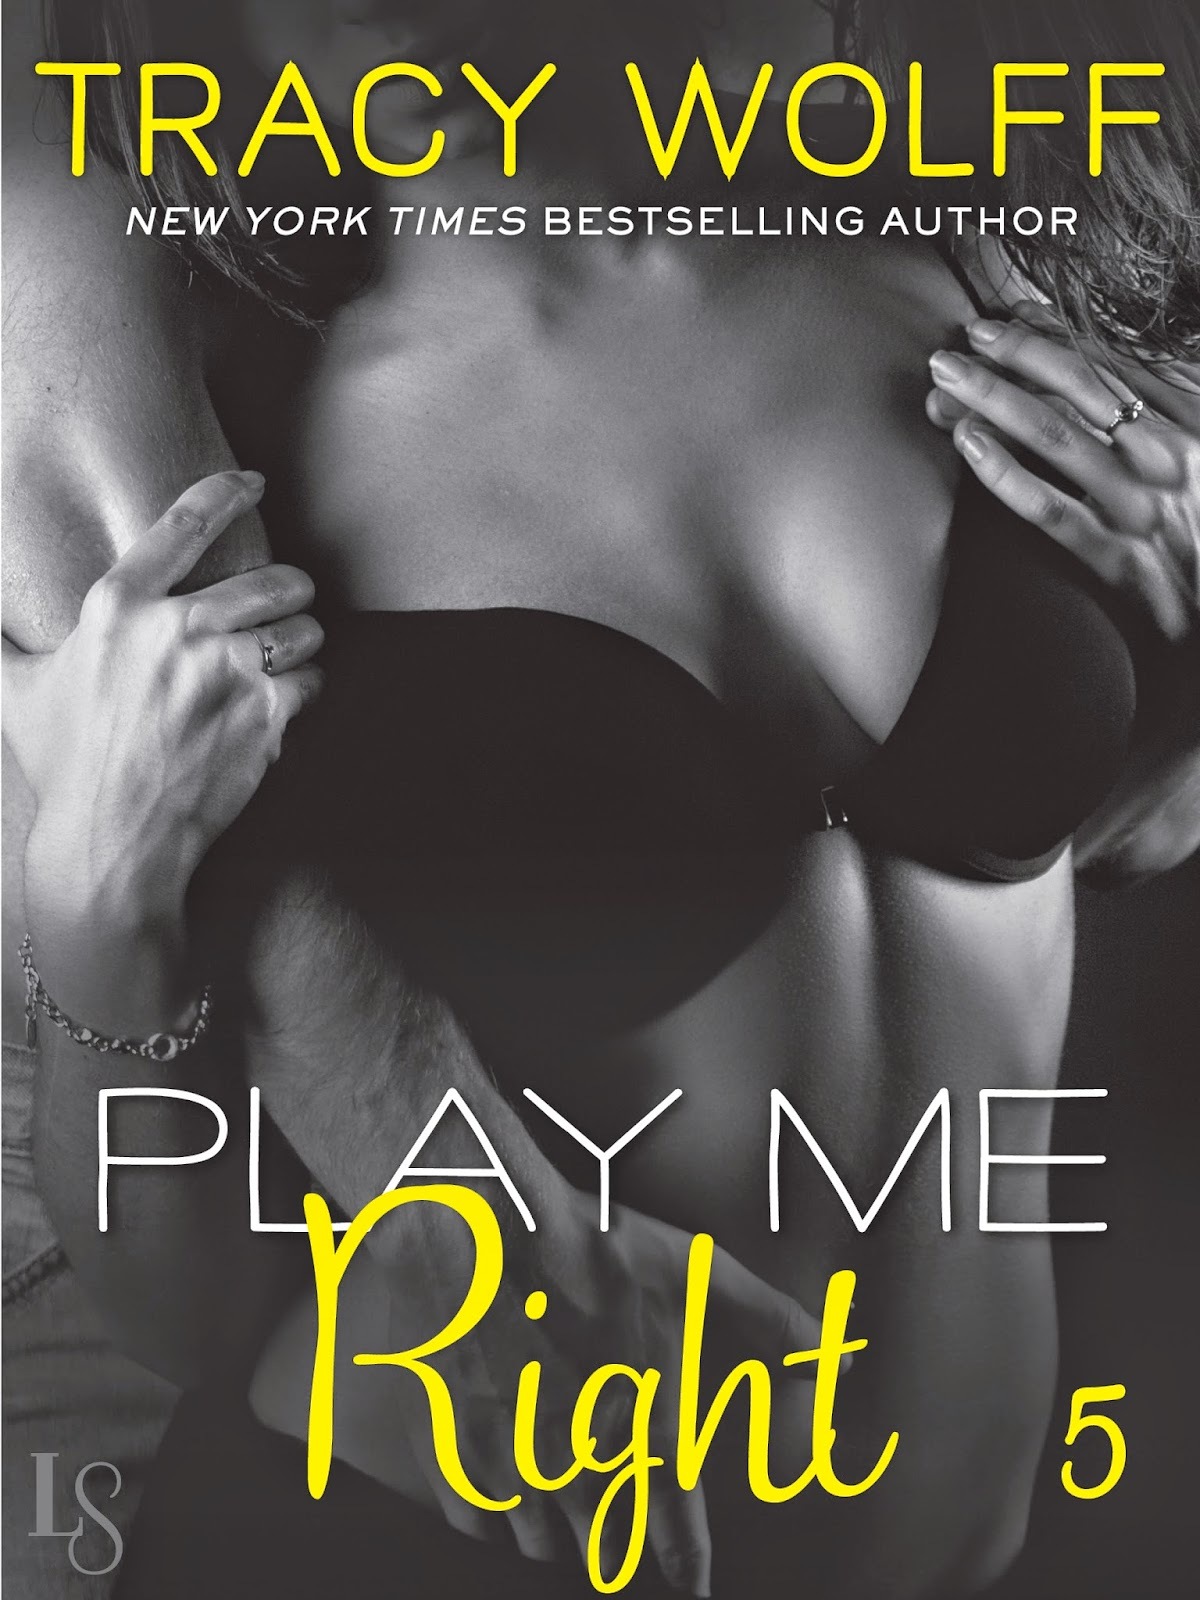 http://www.readloveswept.com/books/play-me-5-play-me-right/